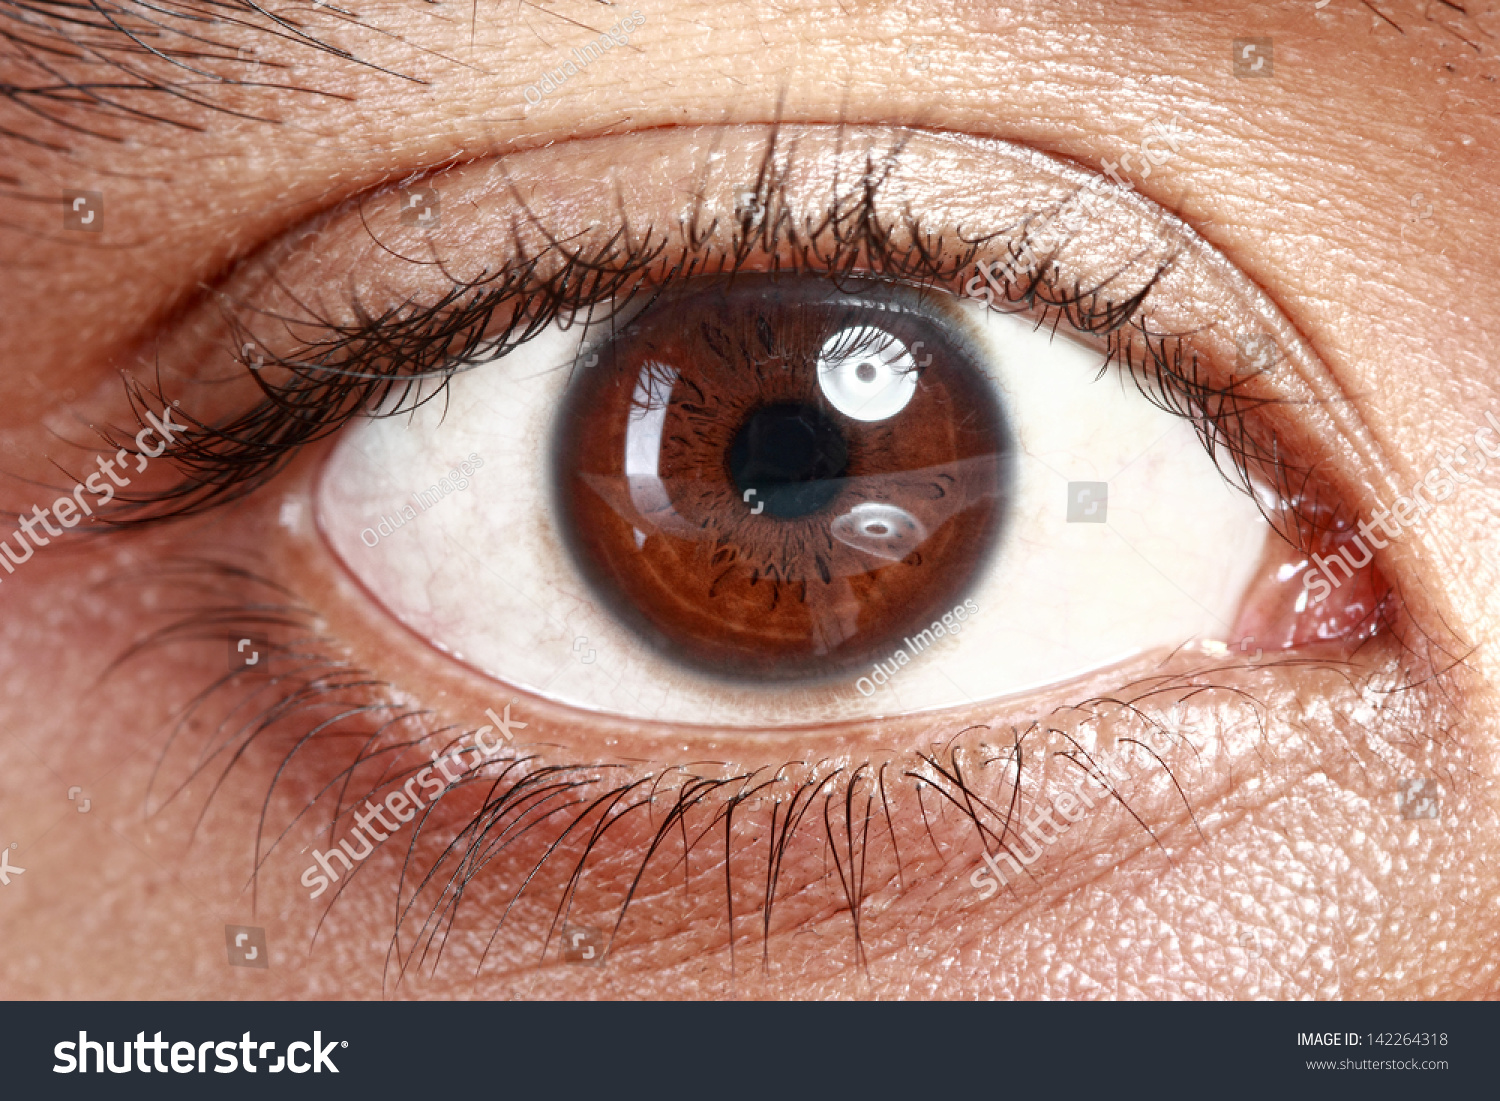 Close Picture Brown Eyes Young Man Stock Photo 142264318 - Shutterstock